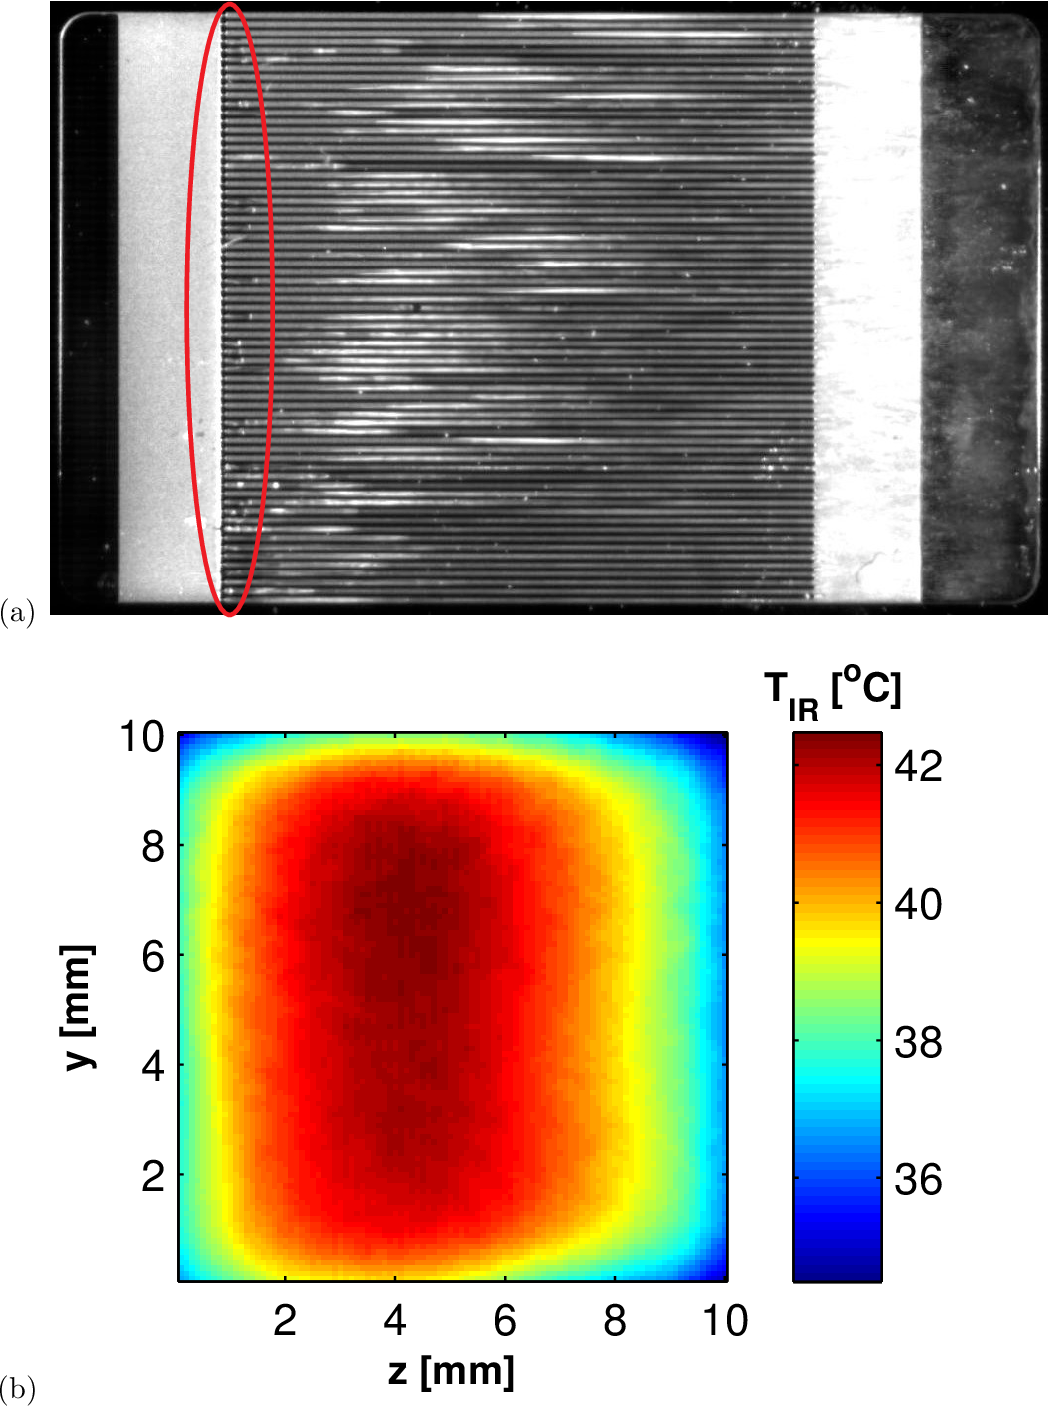 Figure 5.7: Some vapor bubbles flashed at the channel inlet for R236fa flowing in ein,rest=4, Gch=896 kgm−2 s−1, qb=20.7Wcm−2: (a) snapshot from the high-speed video of the twophase flow, and (b) corresponding thermal map.